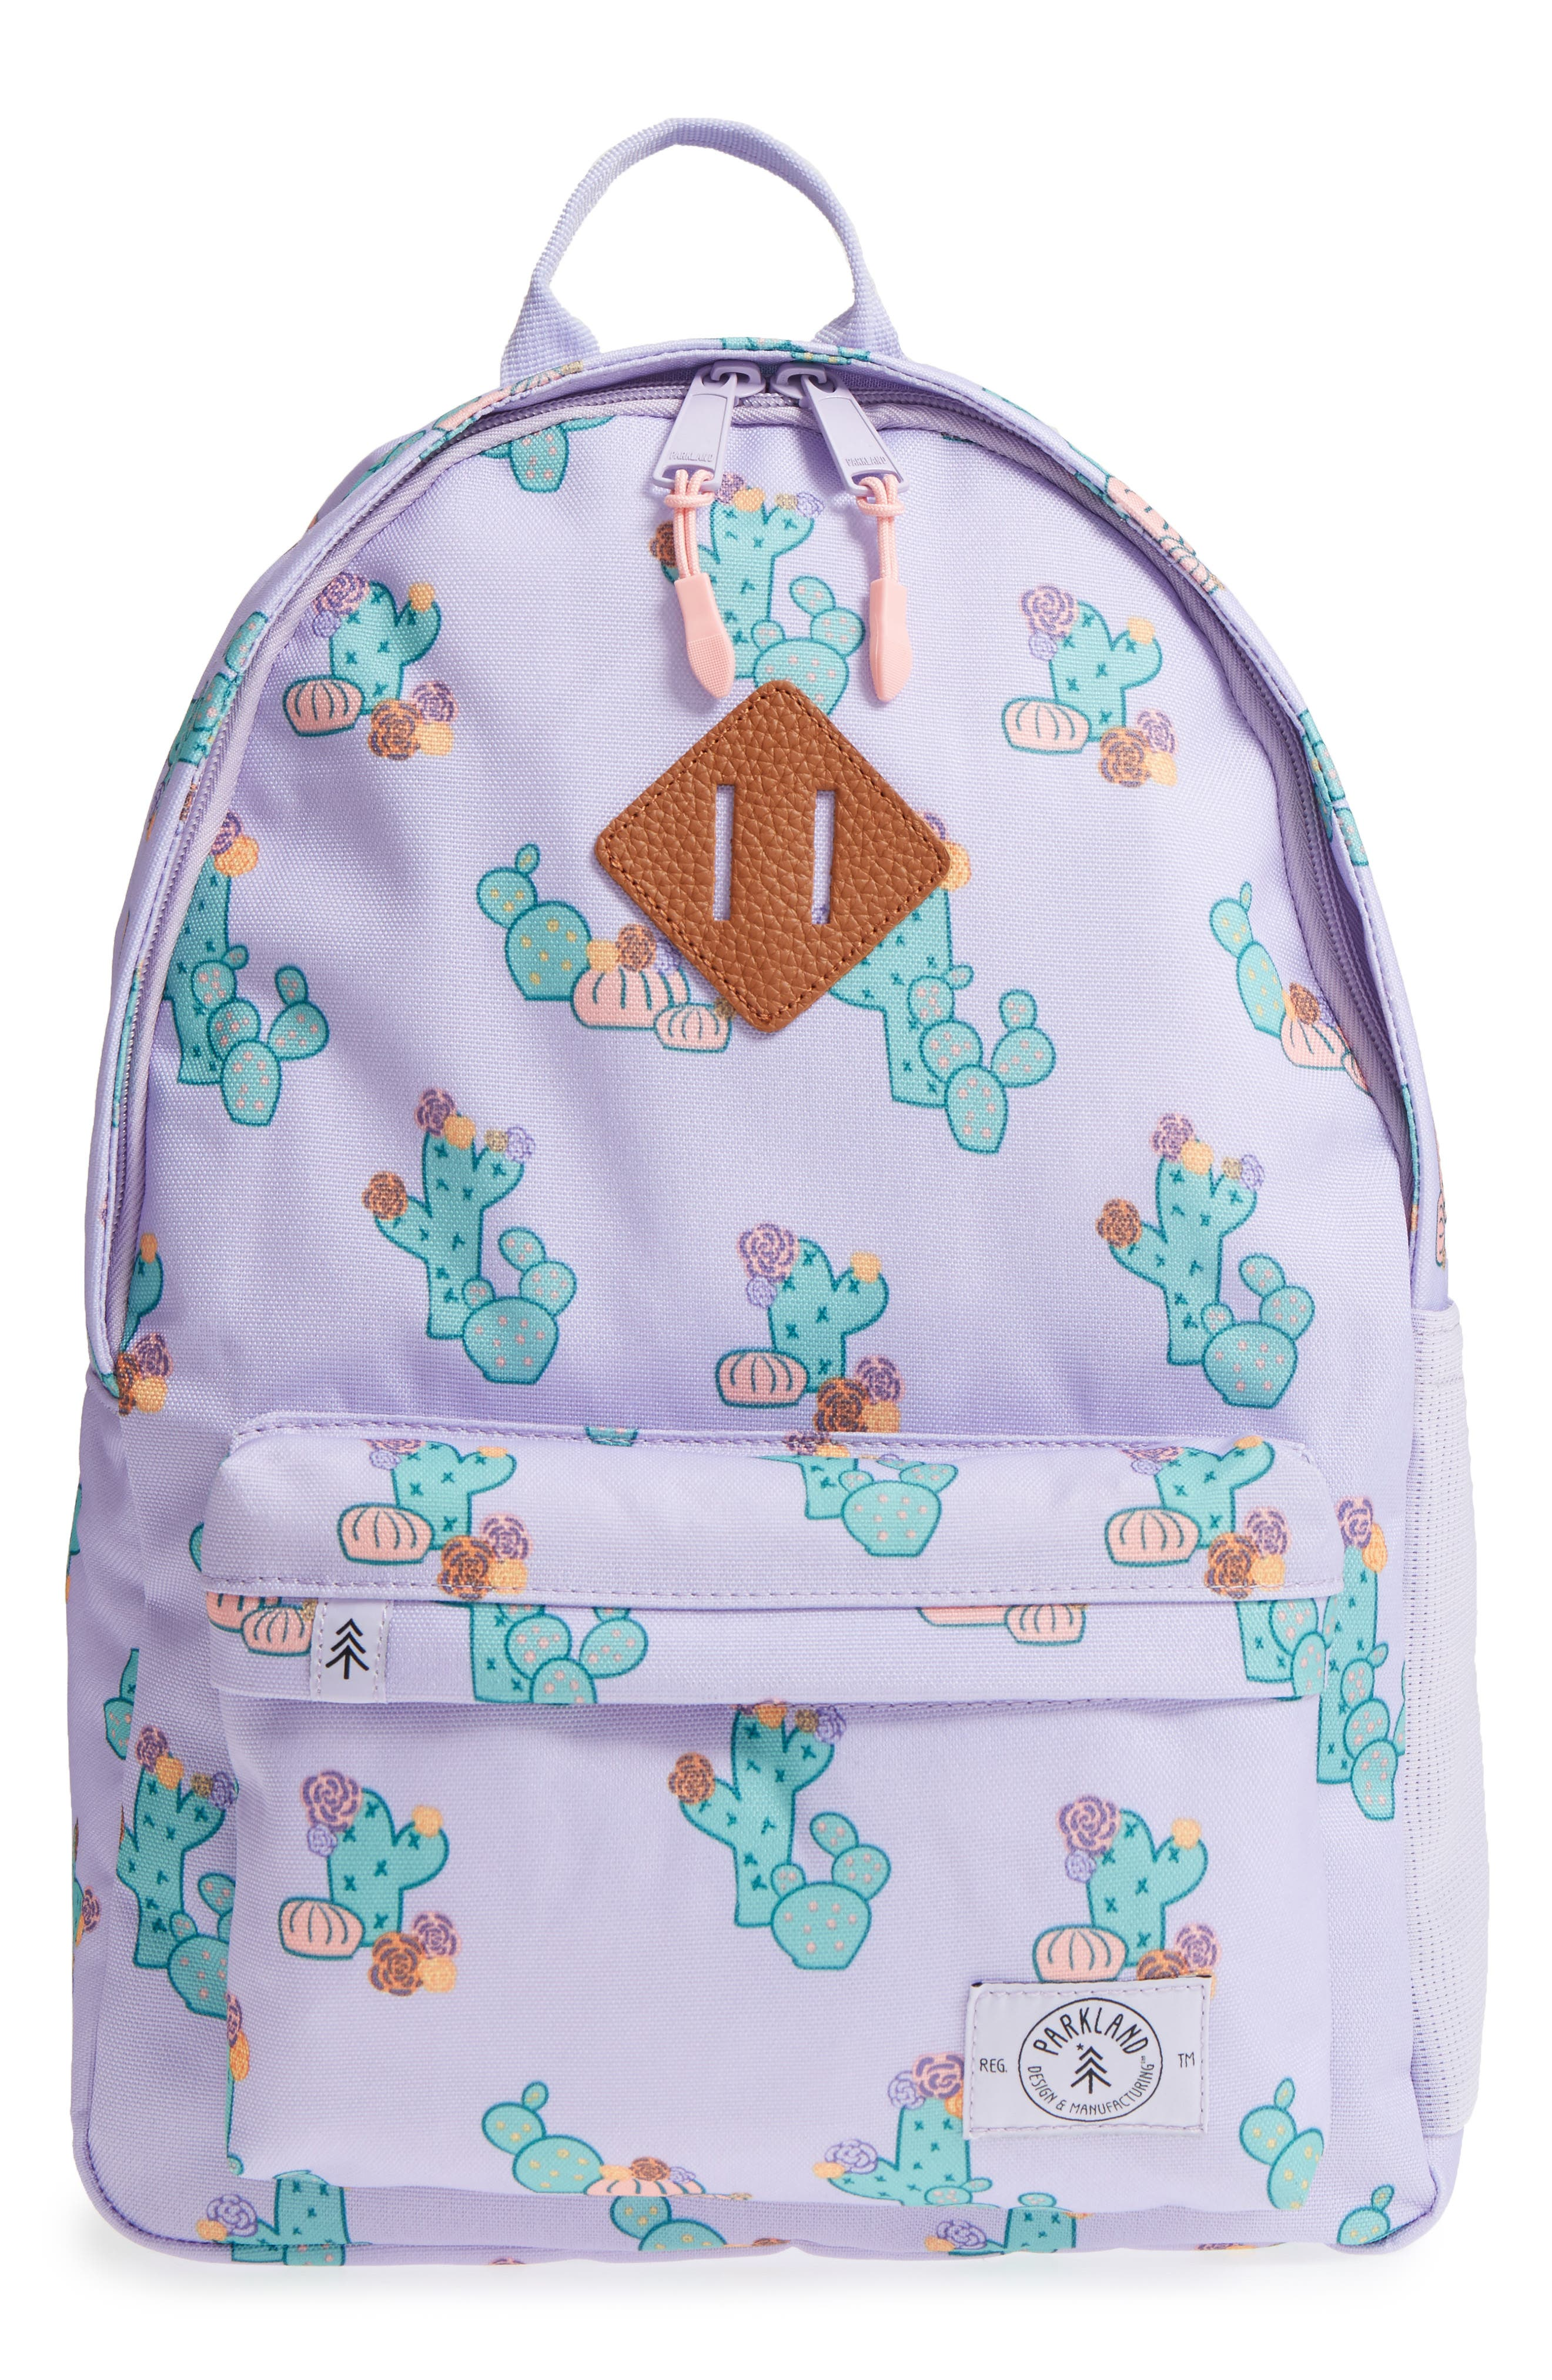 Bayside Cactus Flower Backpack,                             Main thumbnail 1, color,